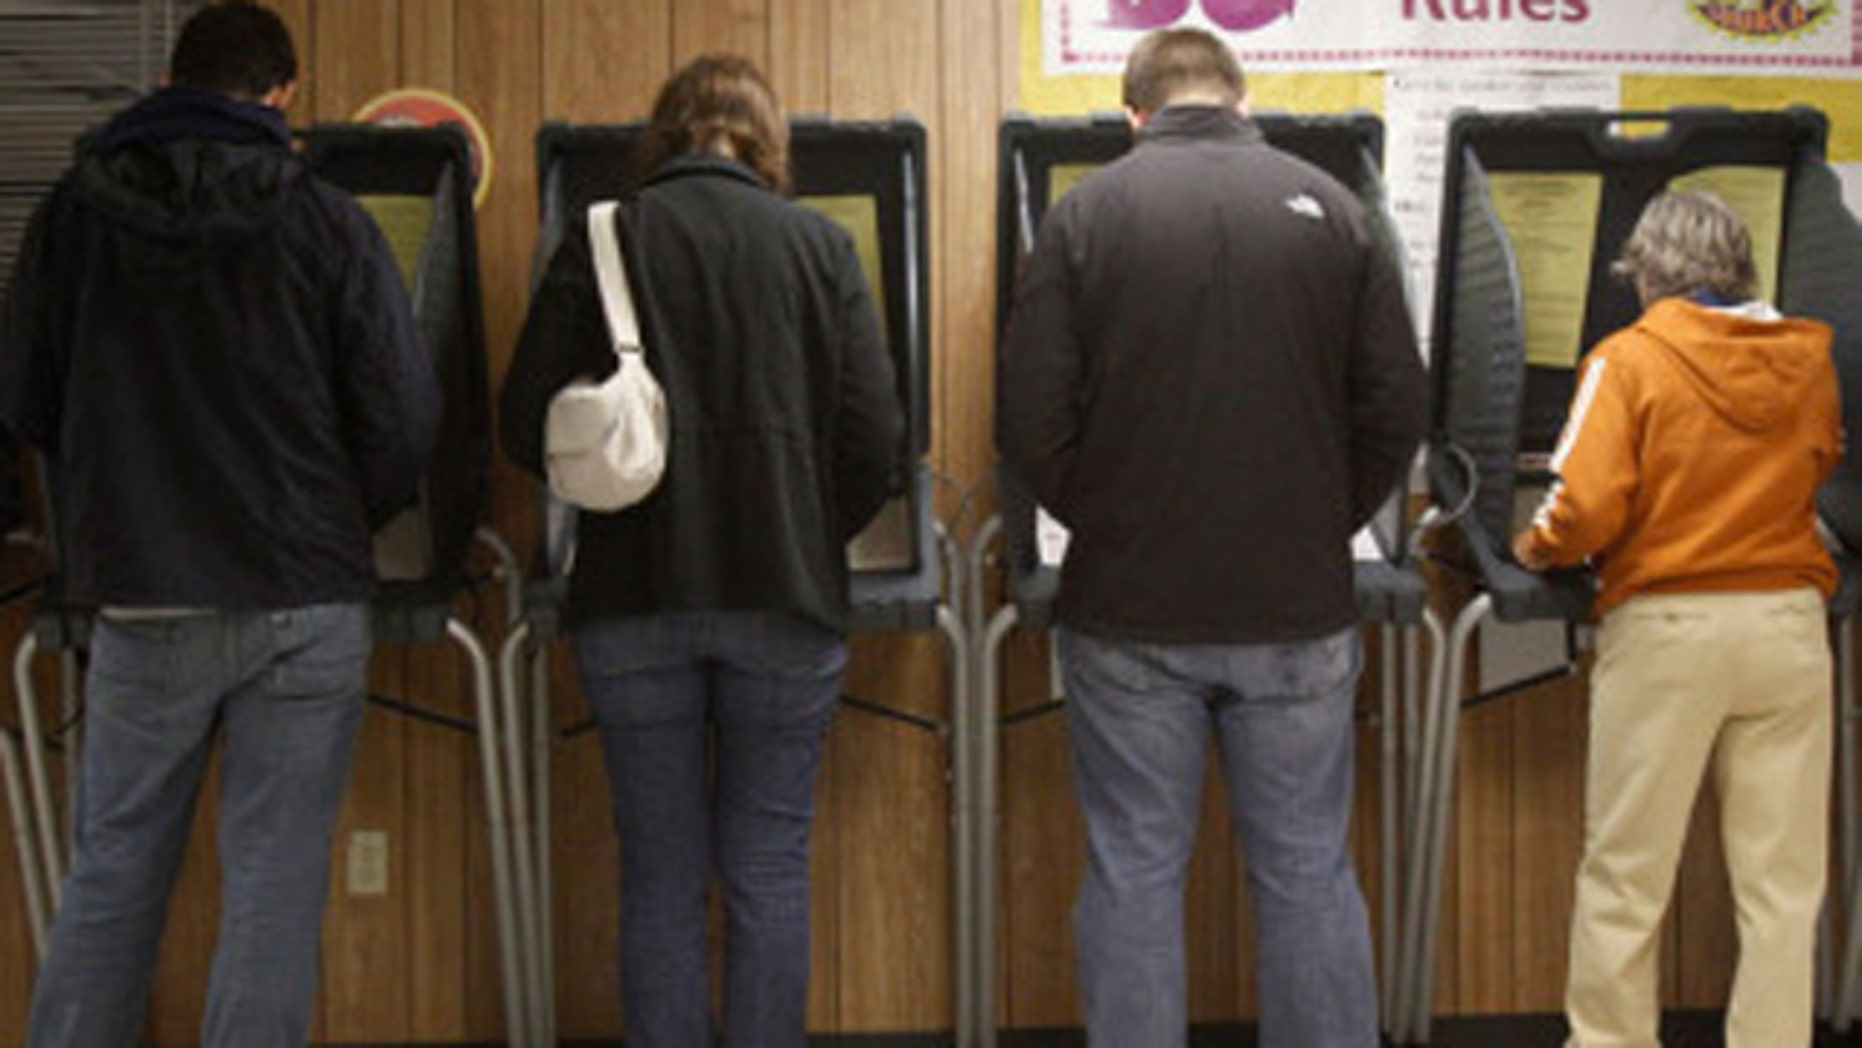 Voters are shown in this Nov. 2, 2010, photo casting ballots in Texas.